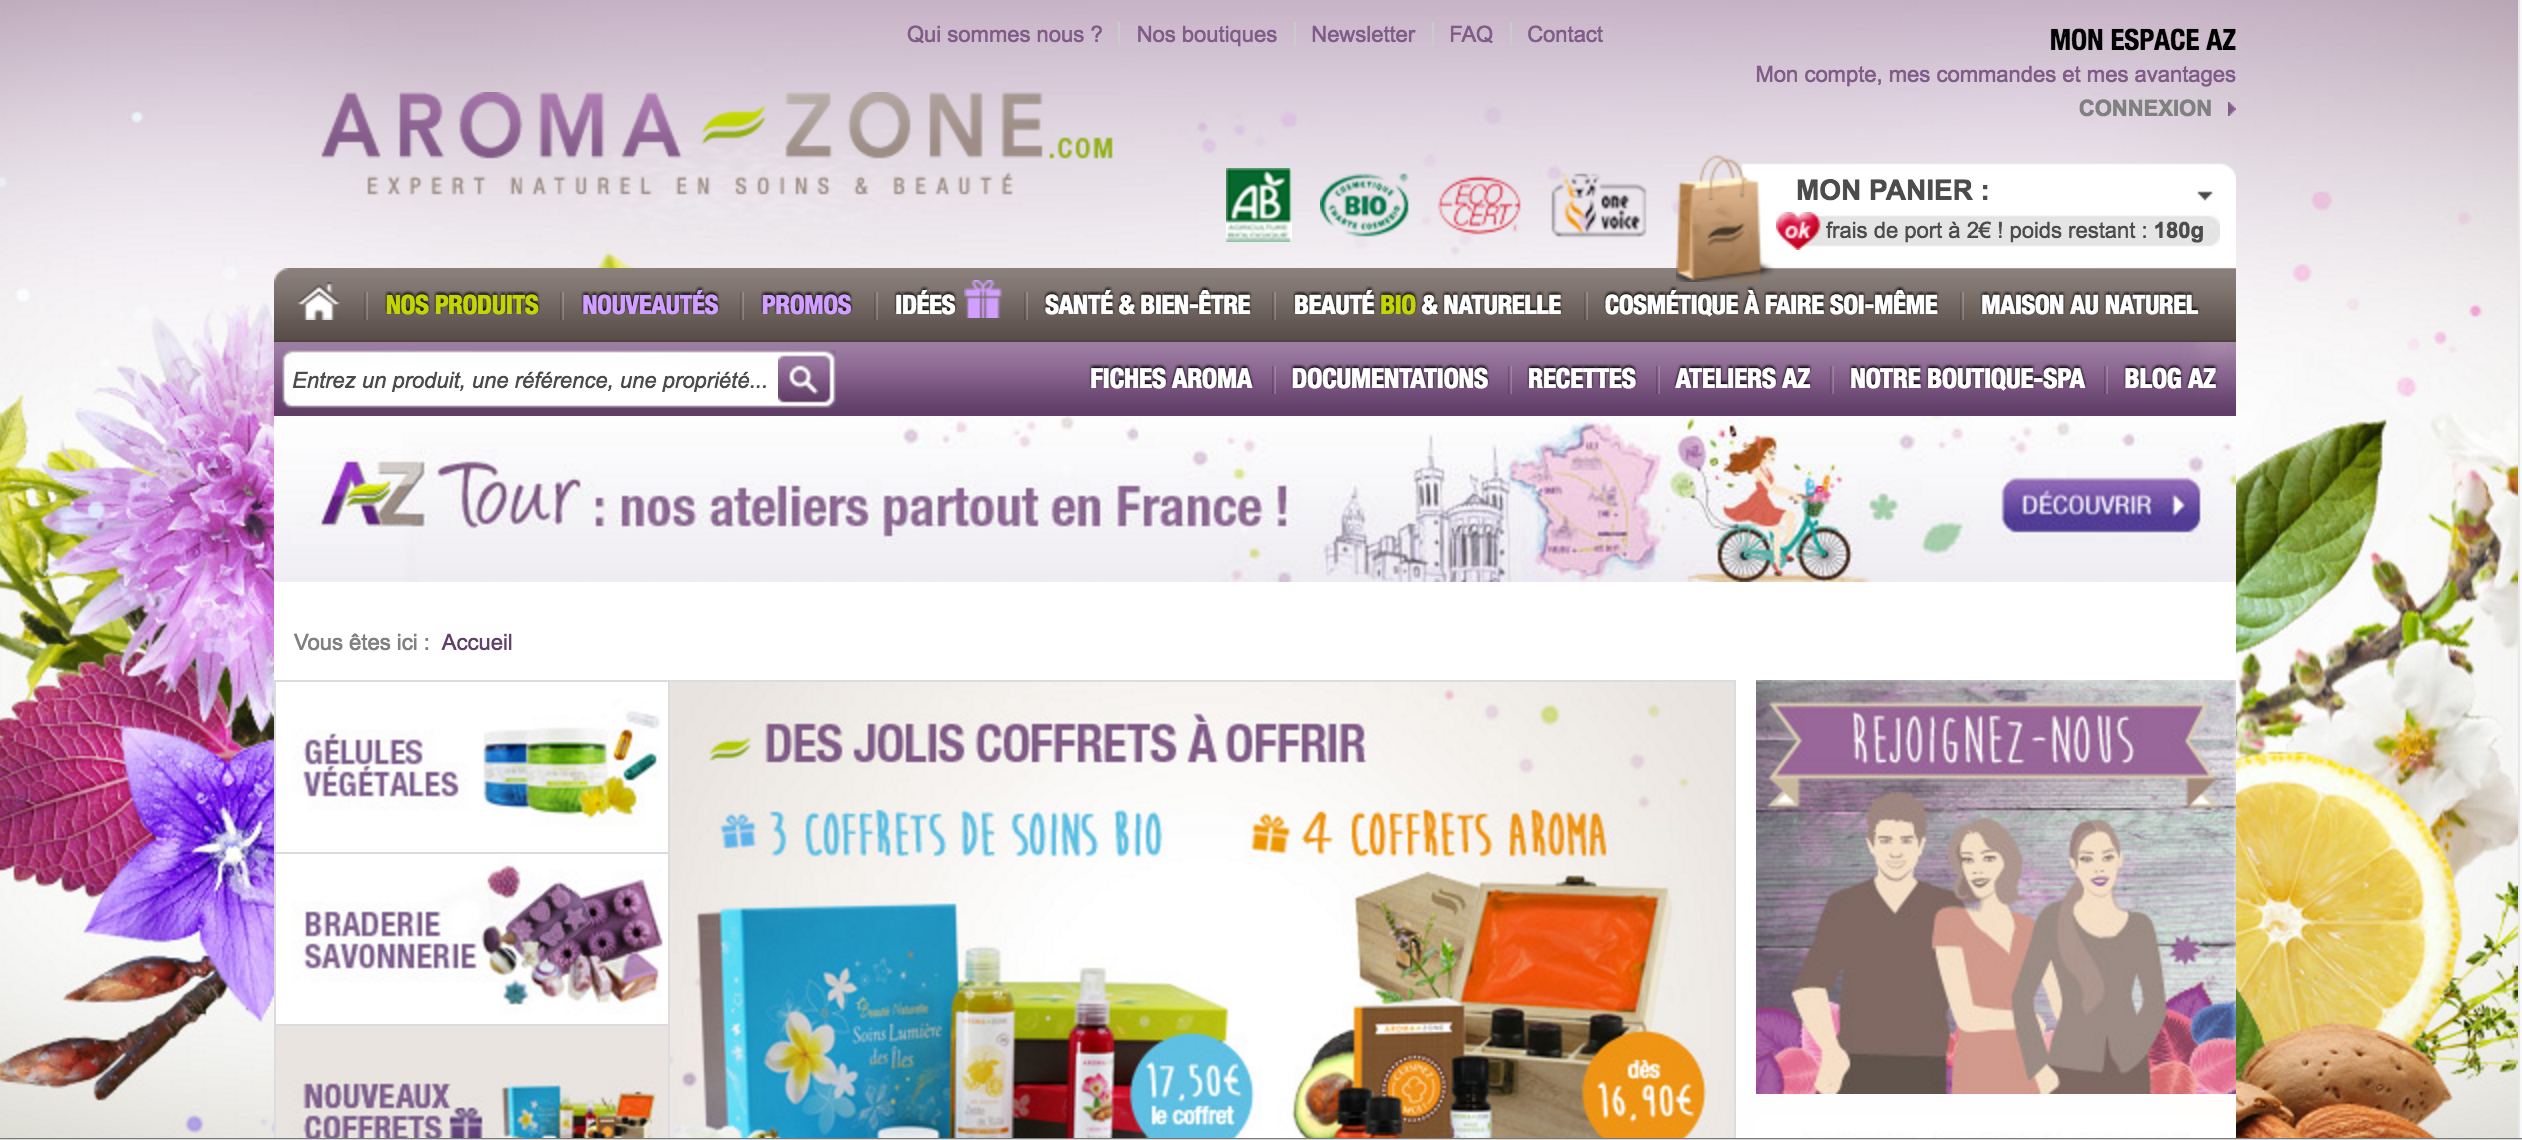 SITE web mode beauté roxane mls aromazone